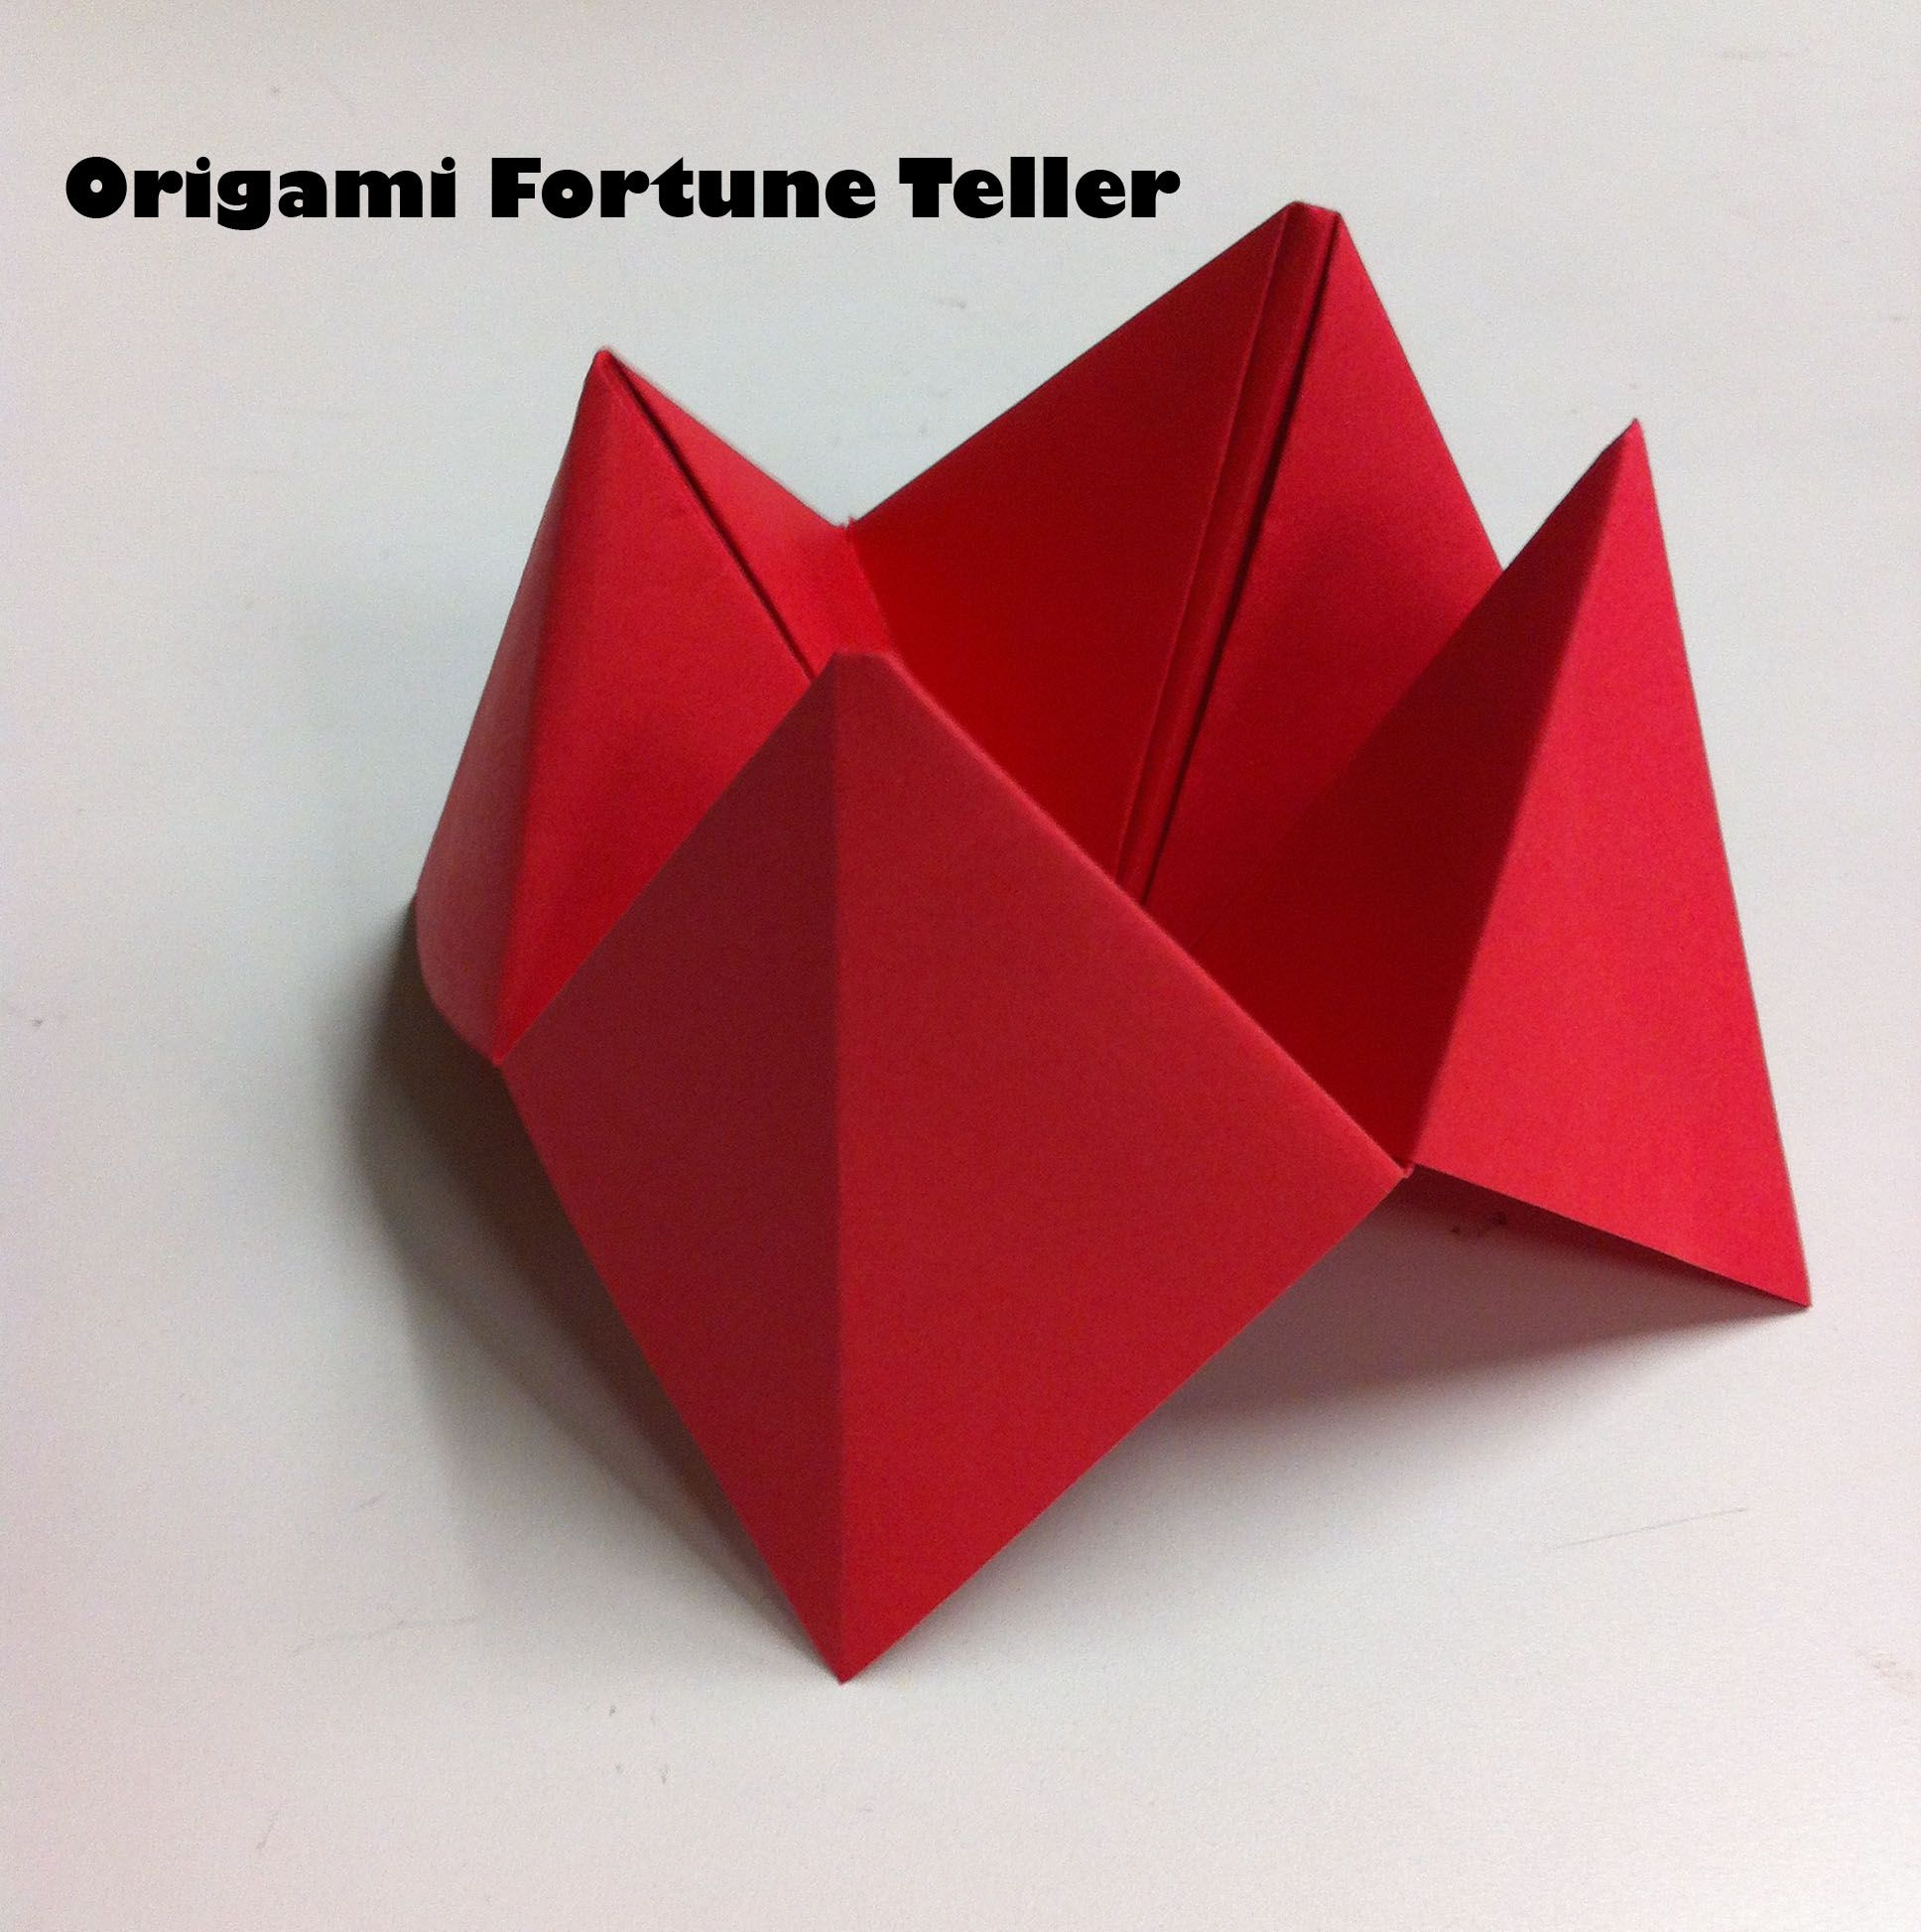 Could Have Kids Put Special Messages To Mom In This Maybe Things They Love About Mom Kid Crafts And Activities Pinterest Origami Fortune Teller Ward